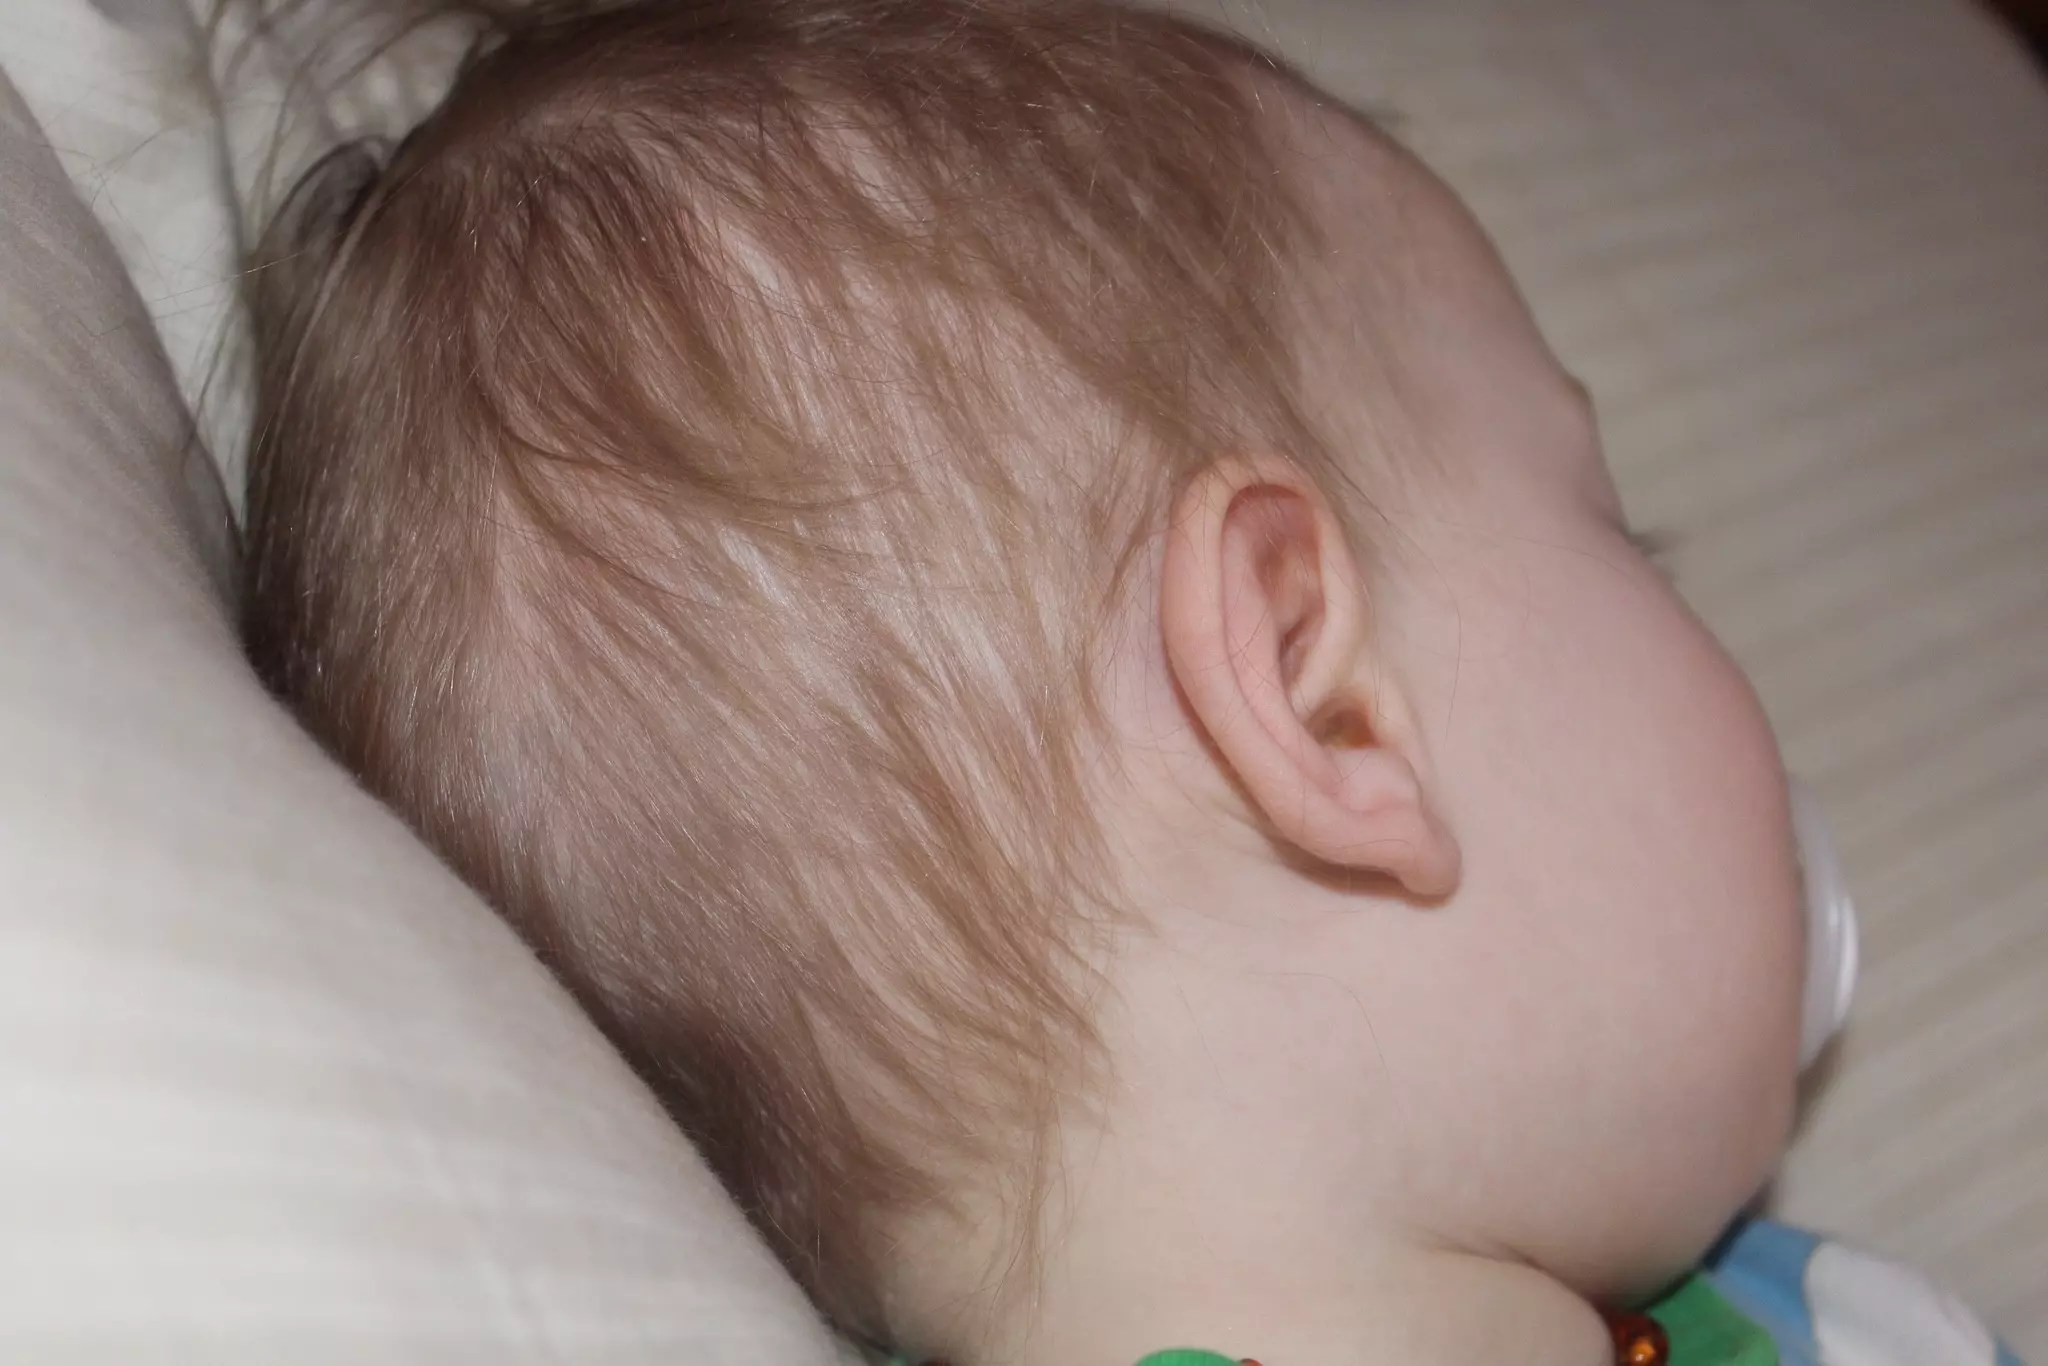 Natural Remedies For Ear Infection In Child